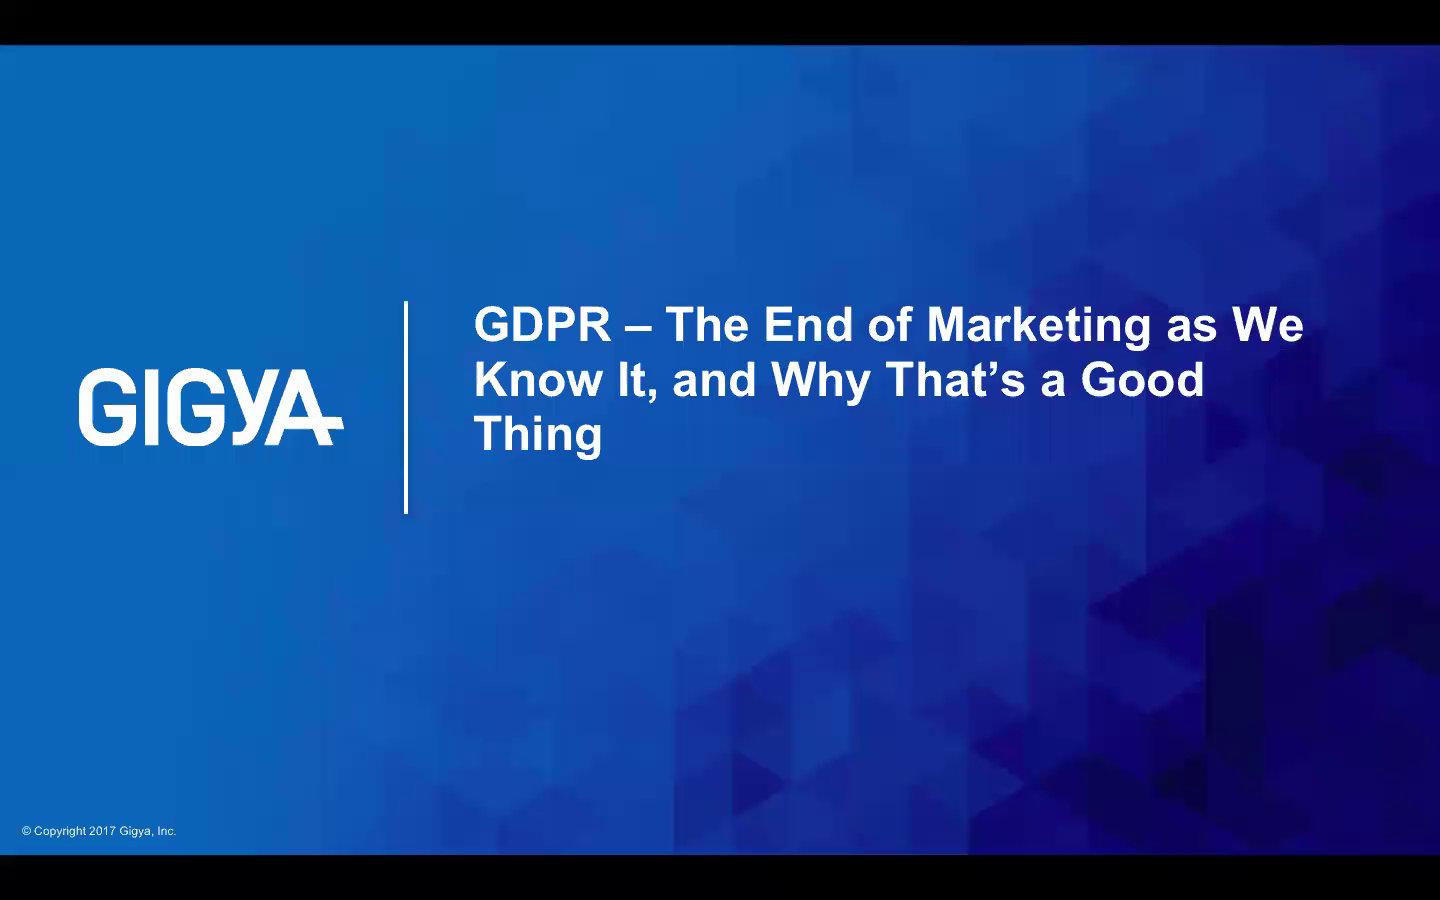 GDPR_-_The_End_of_Marketing_as_We_Know_It,_and_Why_That_s_a_Good_Thing_(Source)